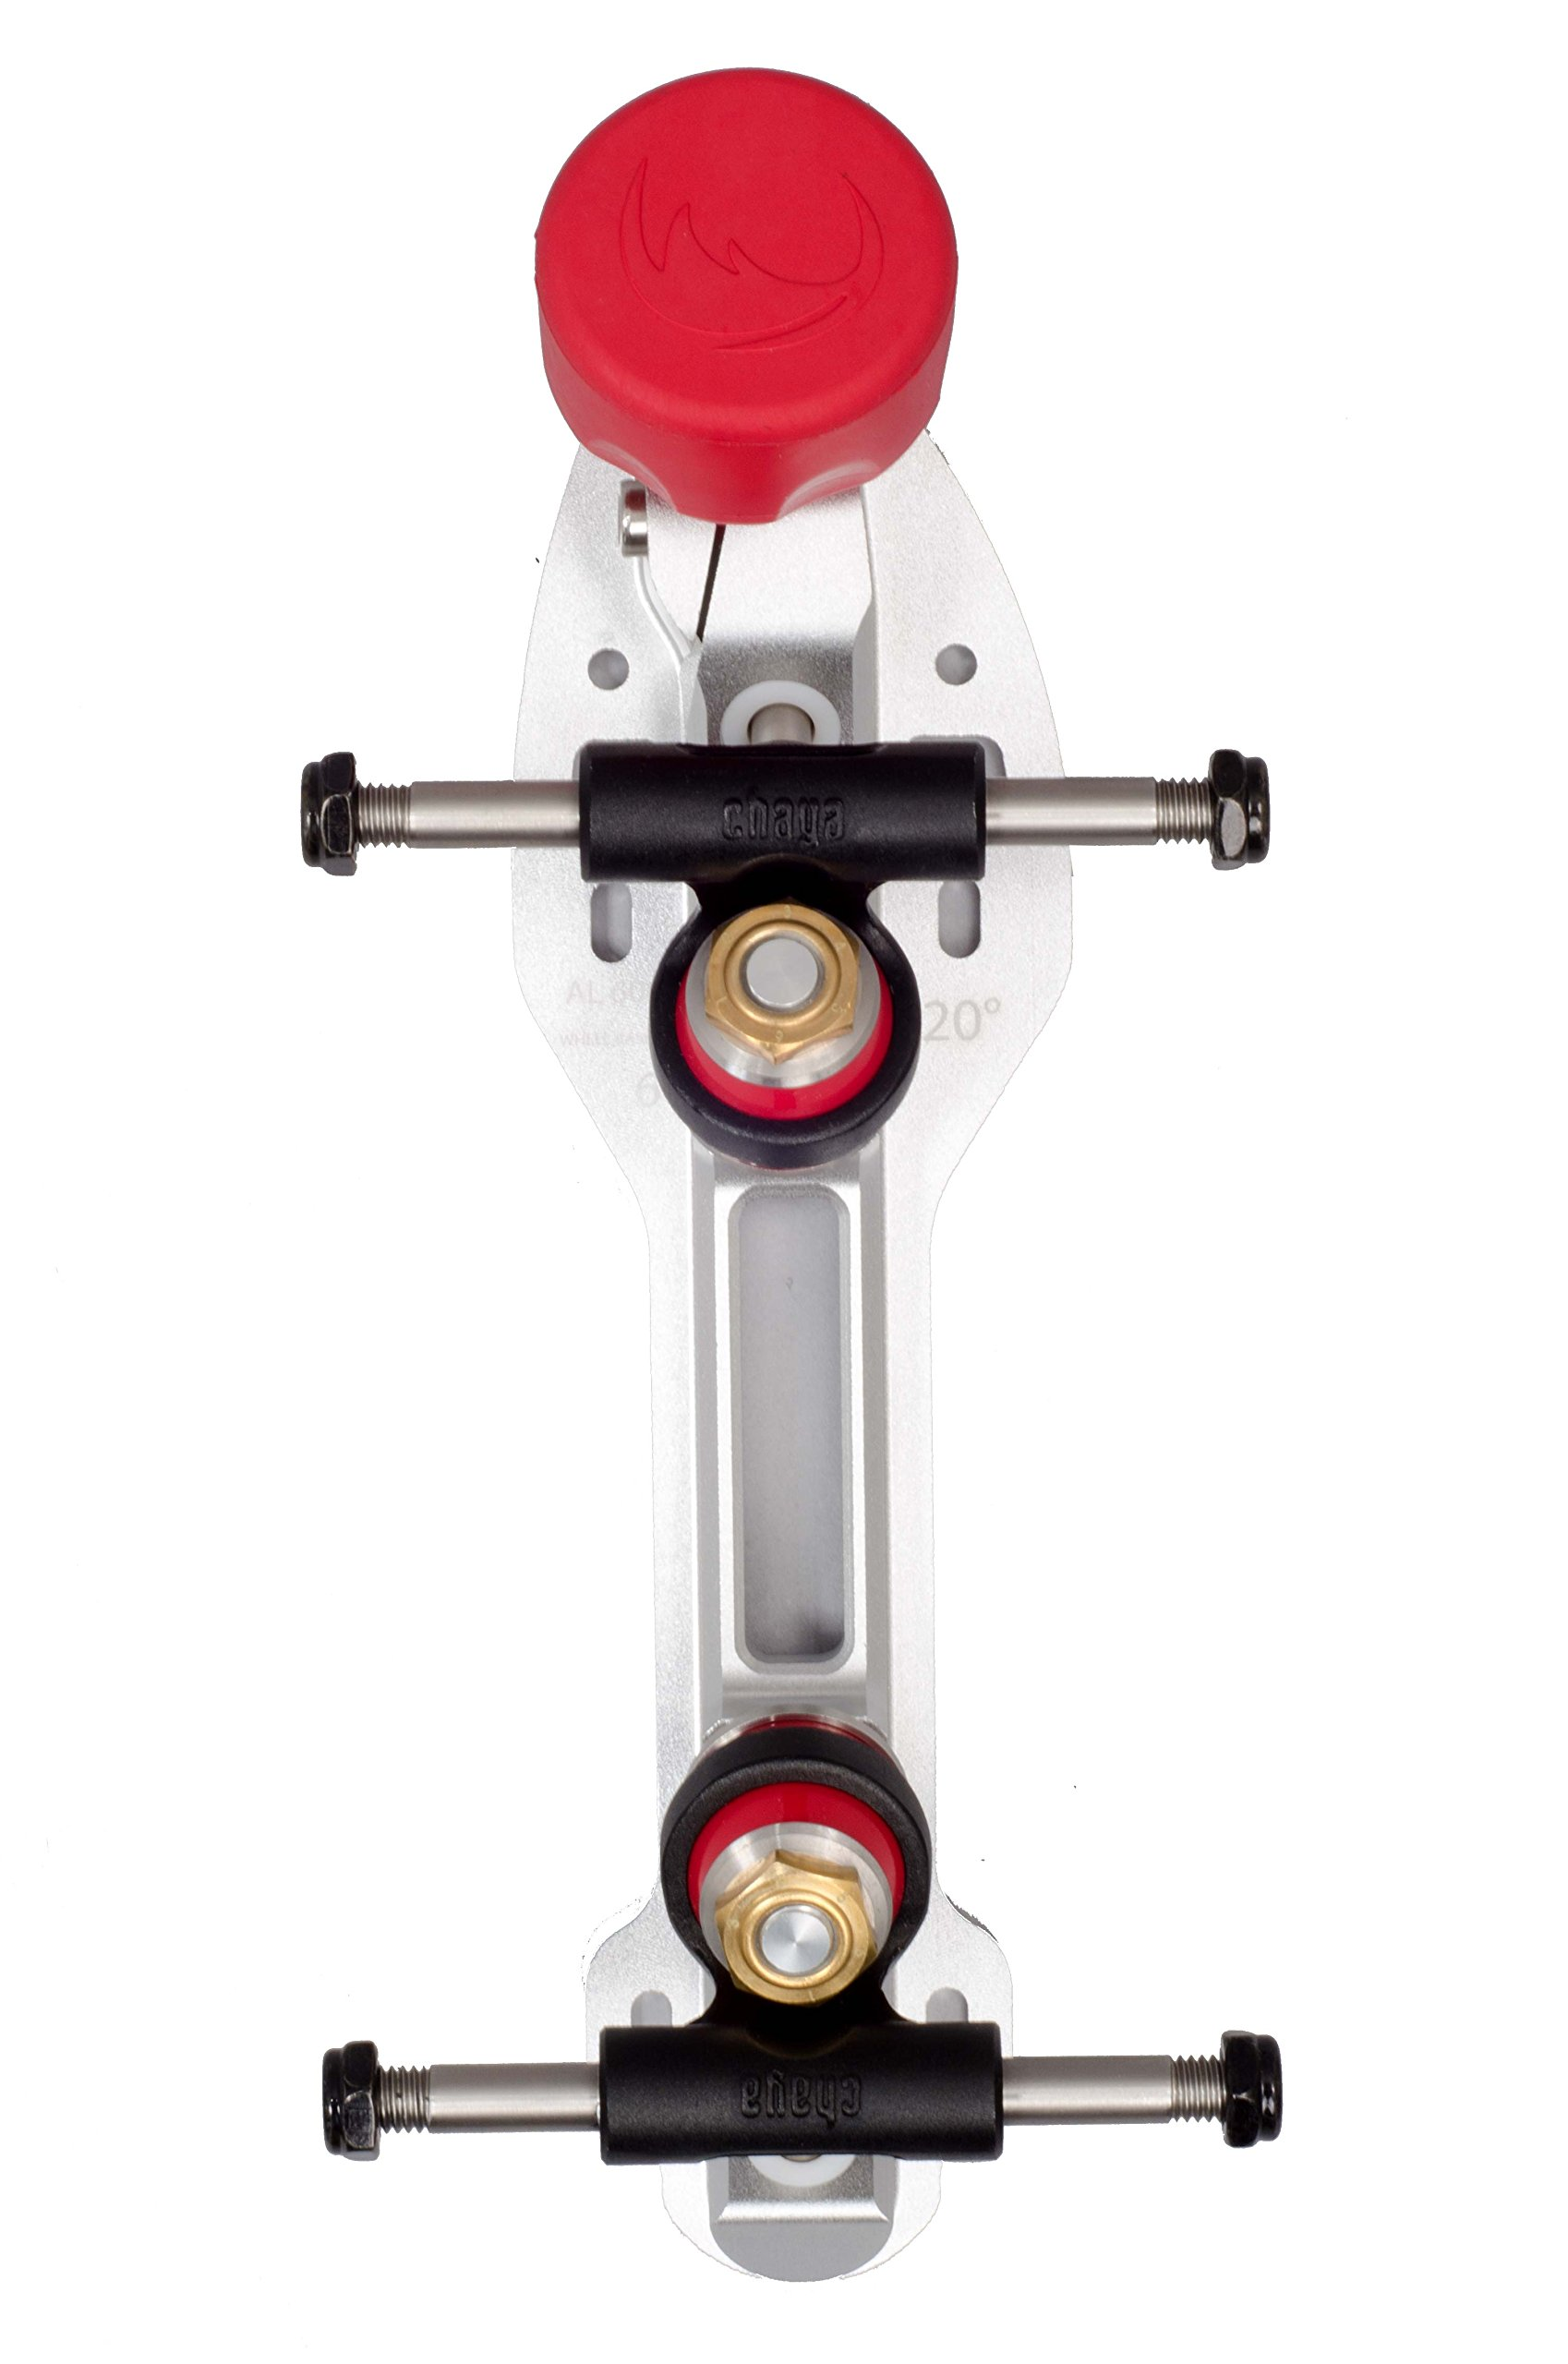 Chaya Ophira Plate 20° Quad Skate Plates with Dual Center Mounting (03)